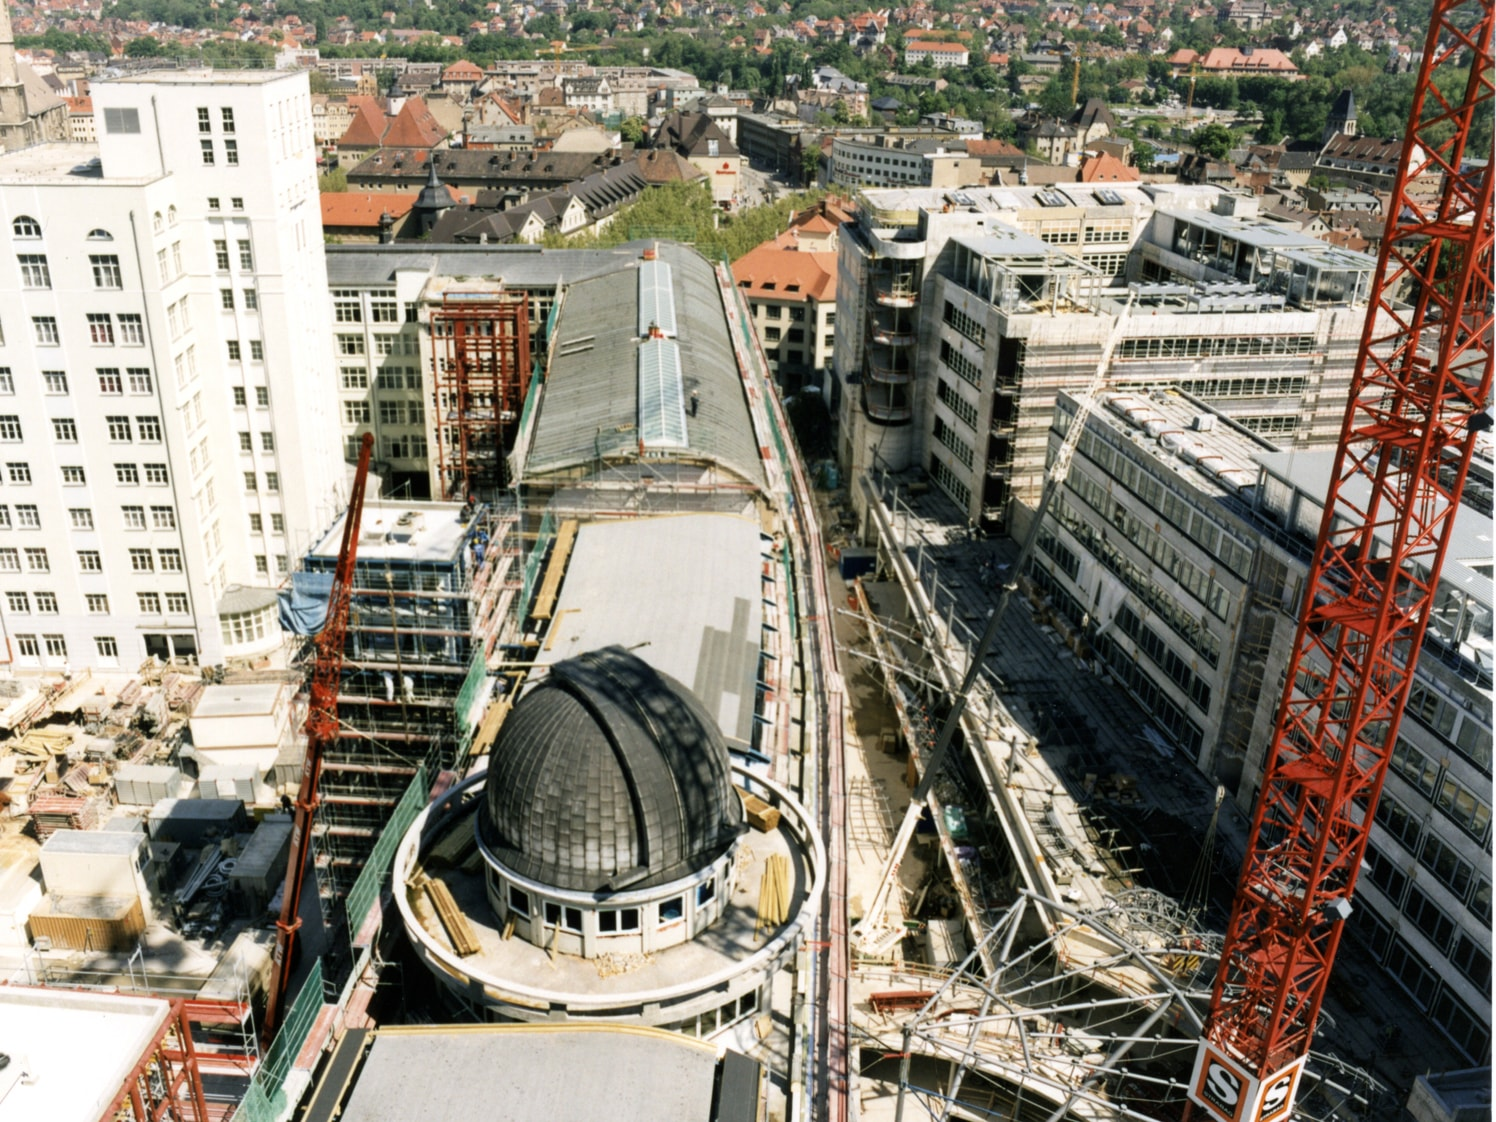 1993: Conversion of the former Zeiss headquarters